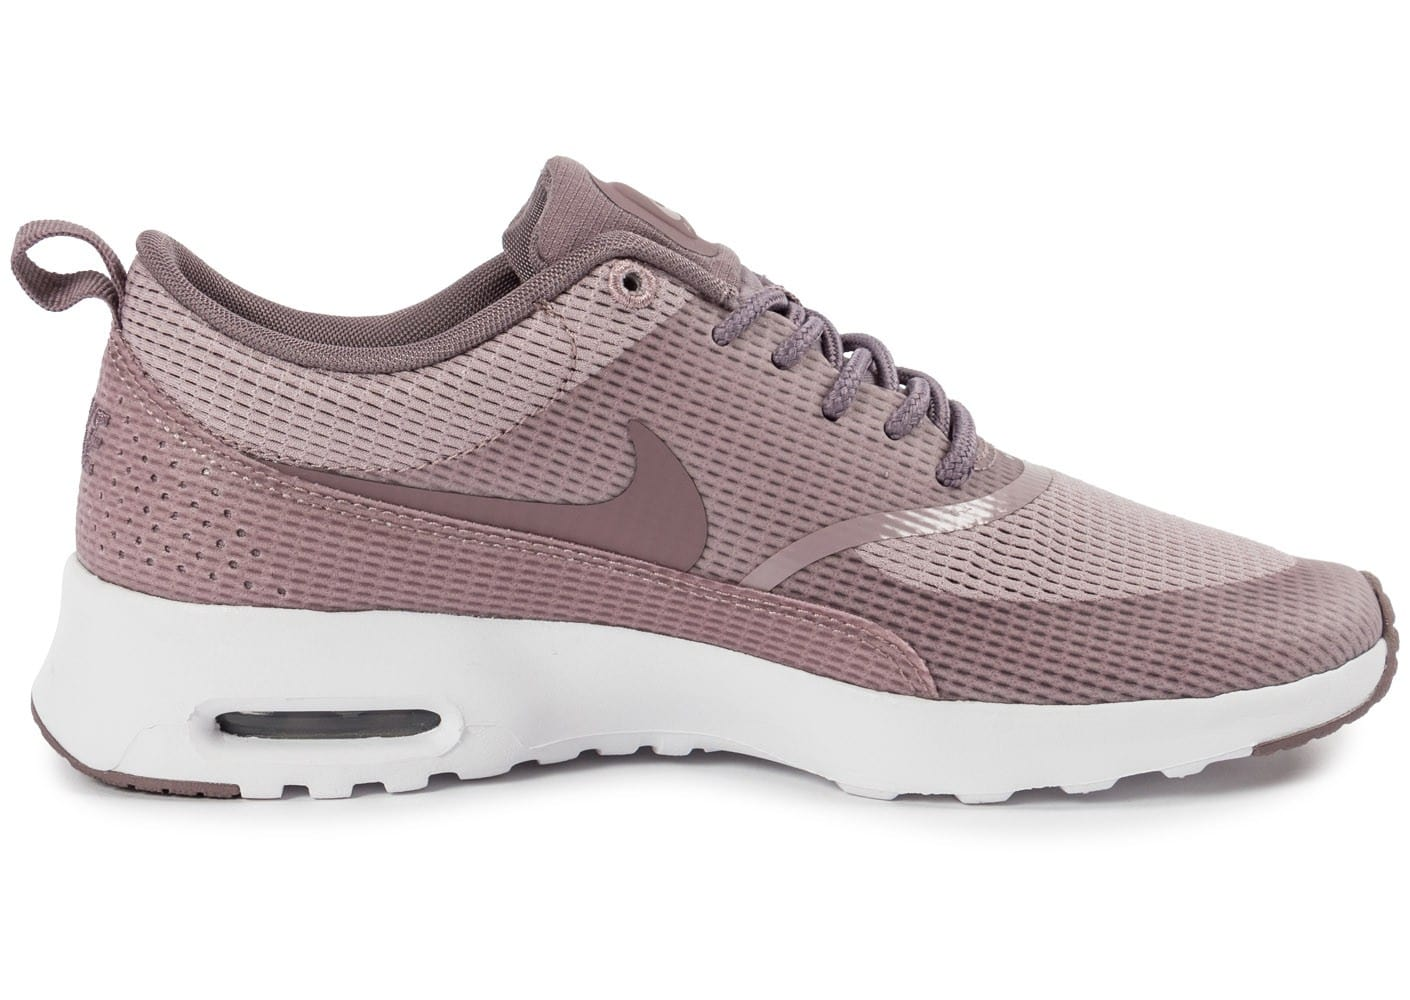 low priced 6d5c5 9a9c0 air max 90 femme prune